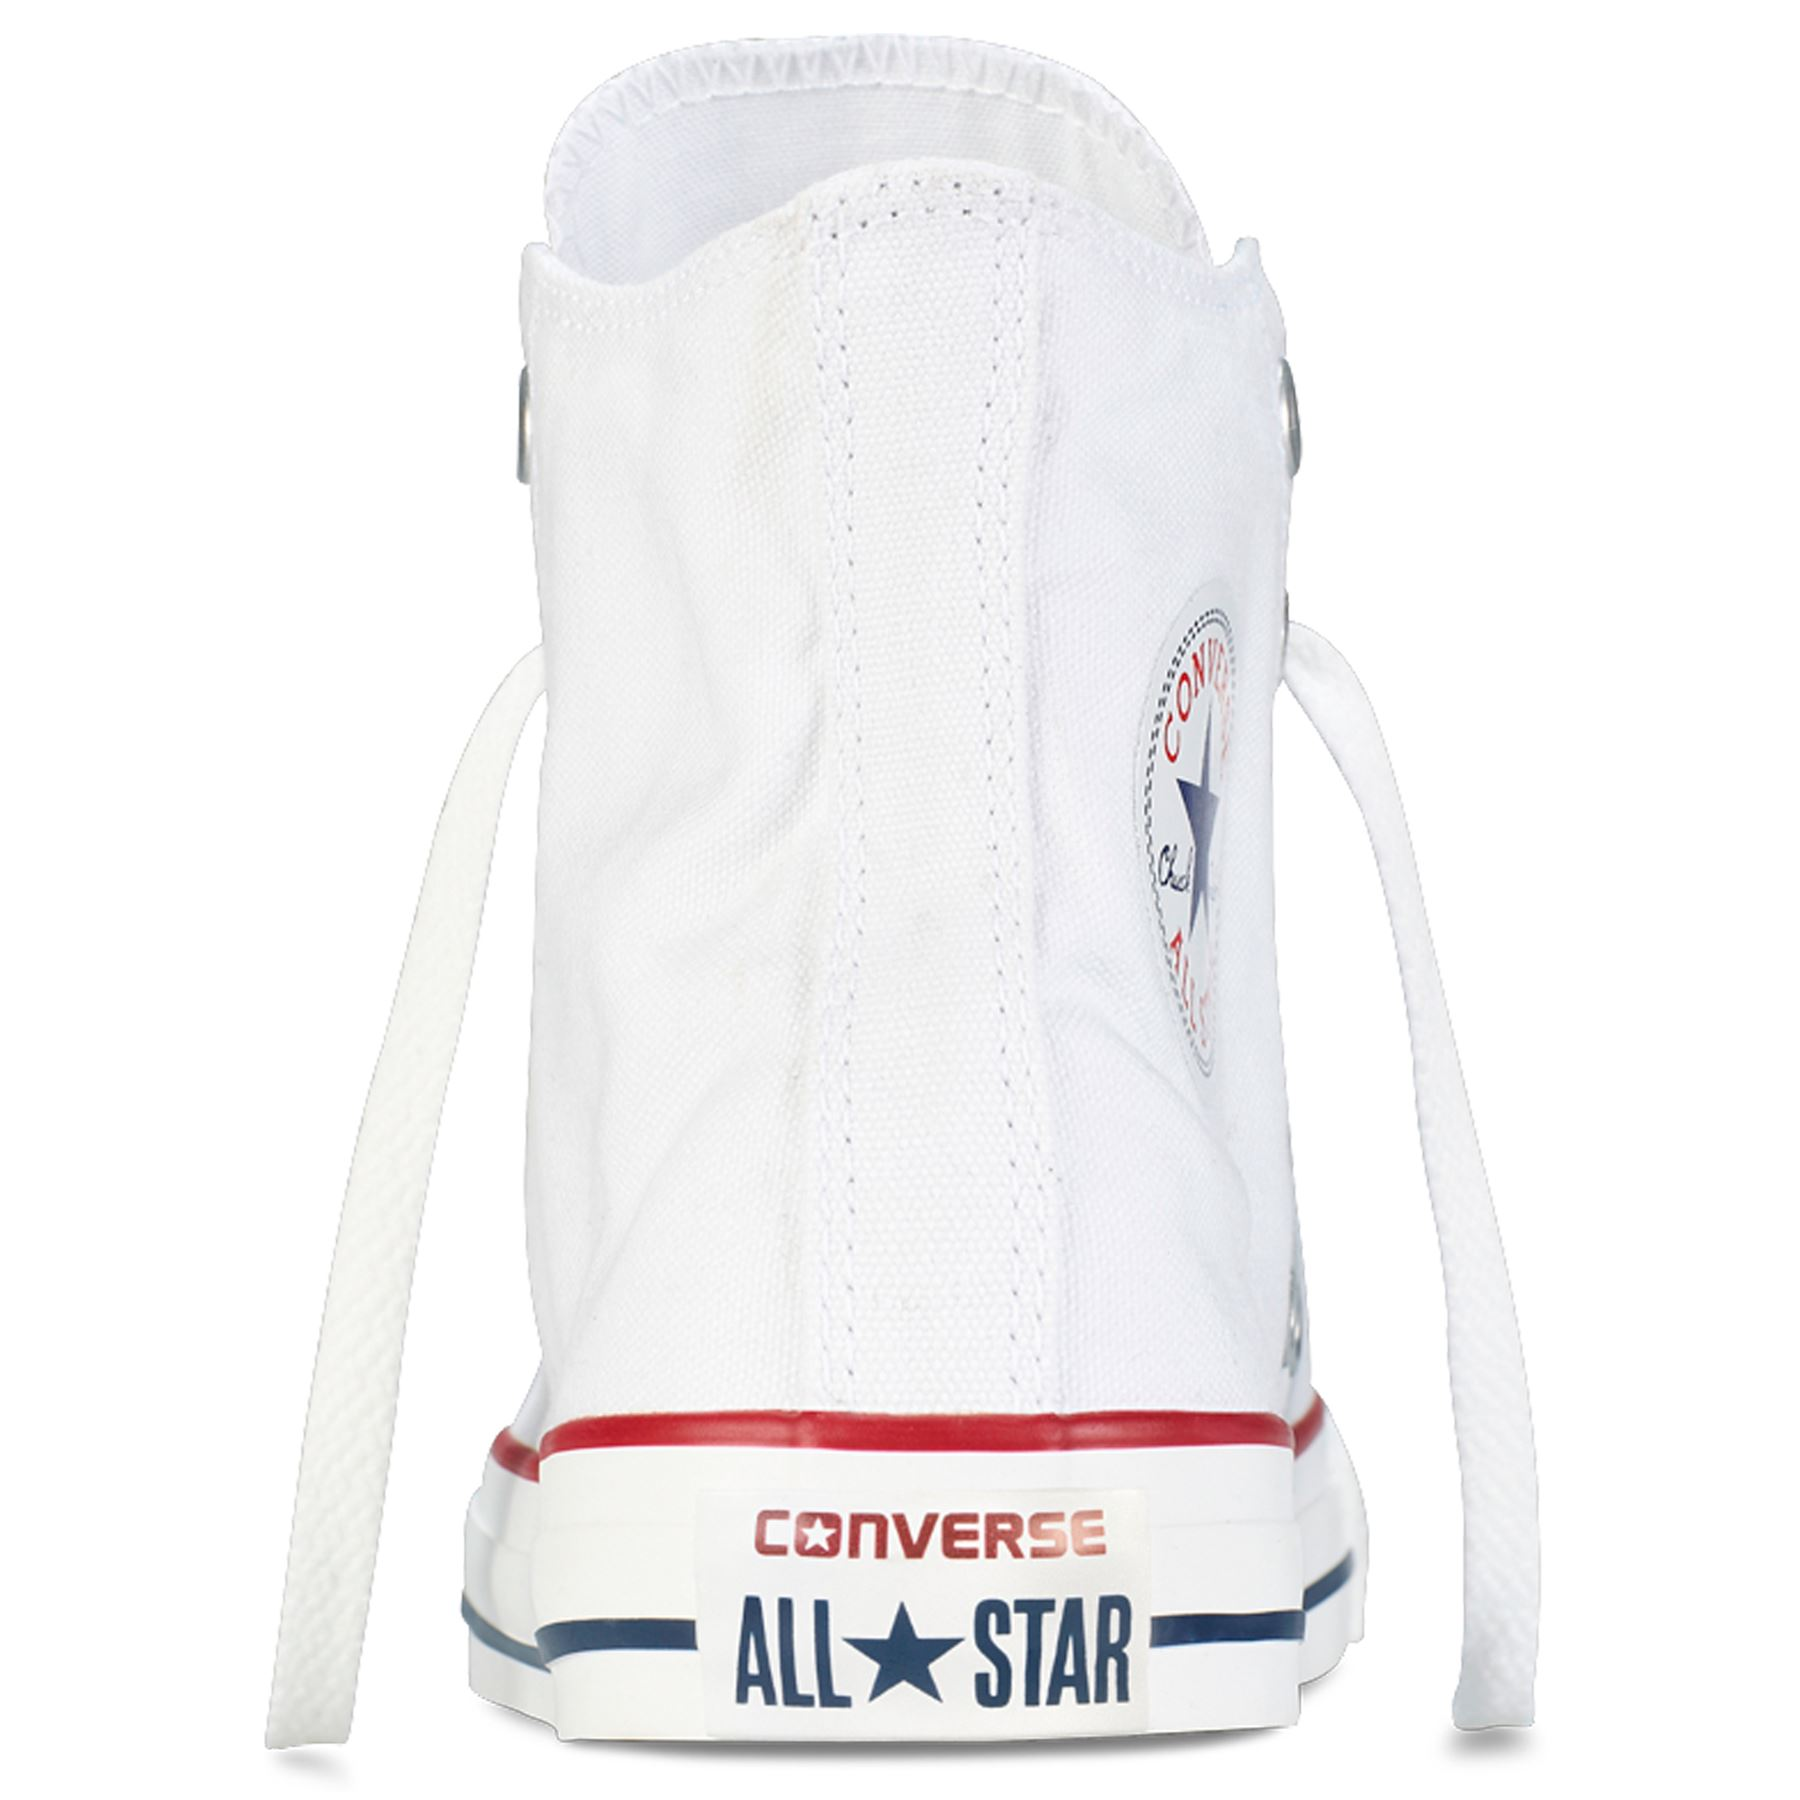 Converse-All-Star-Unisex-Mens-Womens-High-Hi-Tops-Trainers-Chuck-Taylor-Pumps thumbnail 29